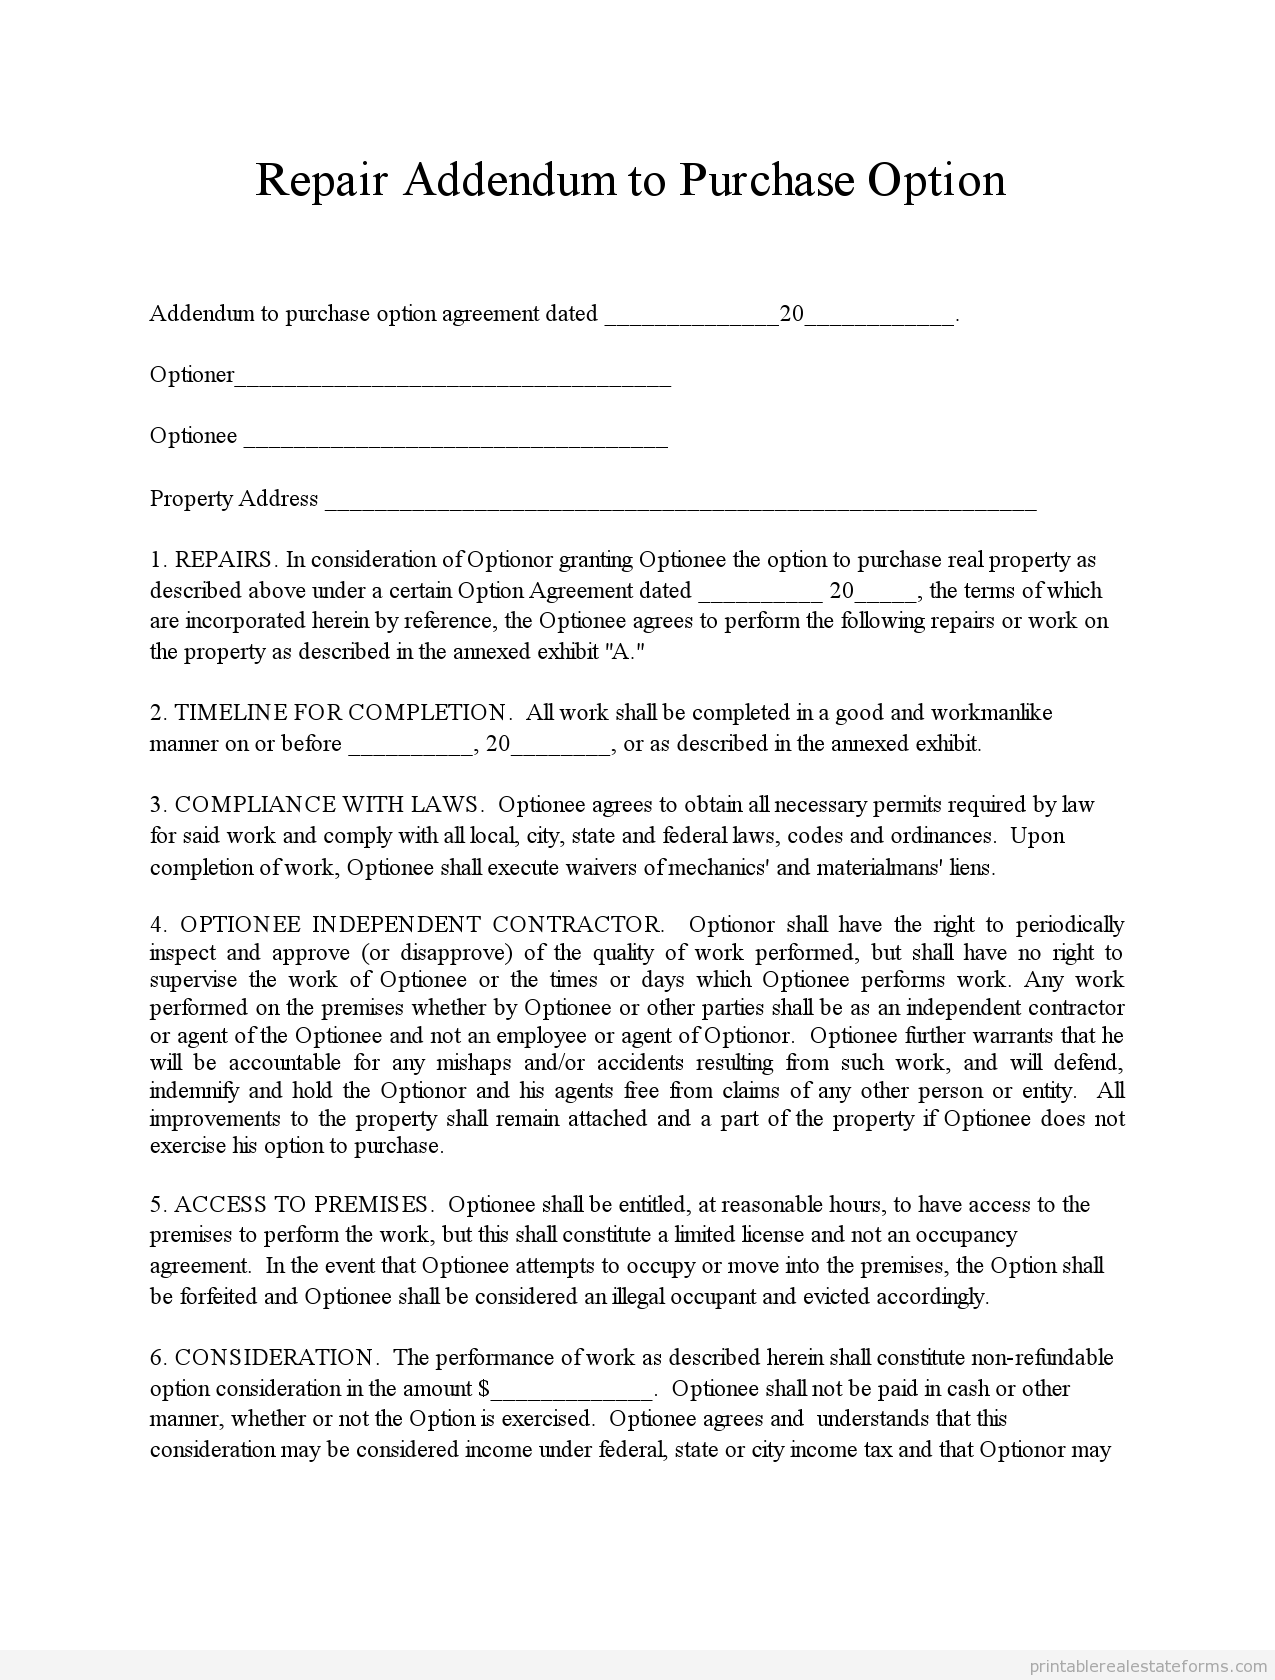 sample printable repair addendum form sample real estate